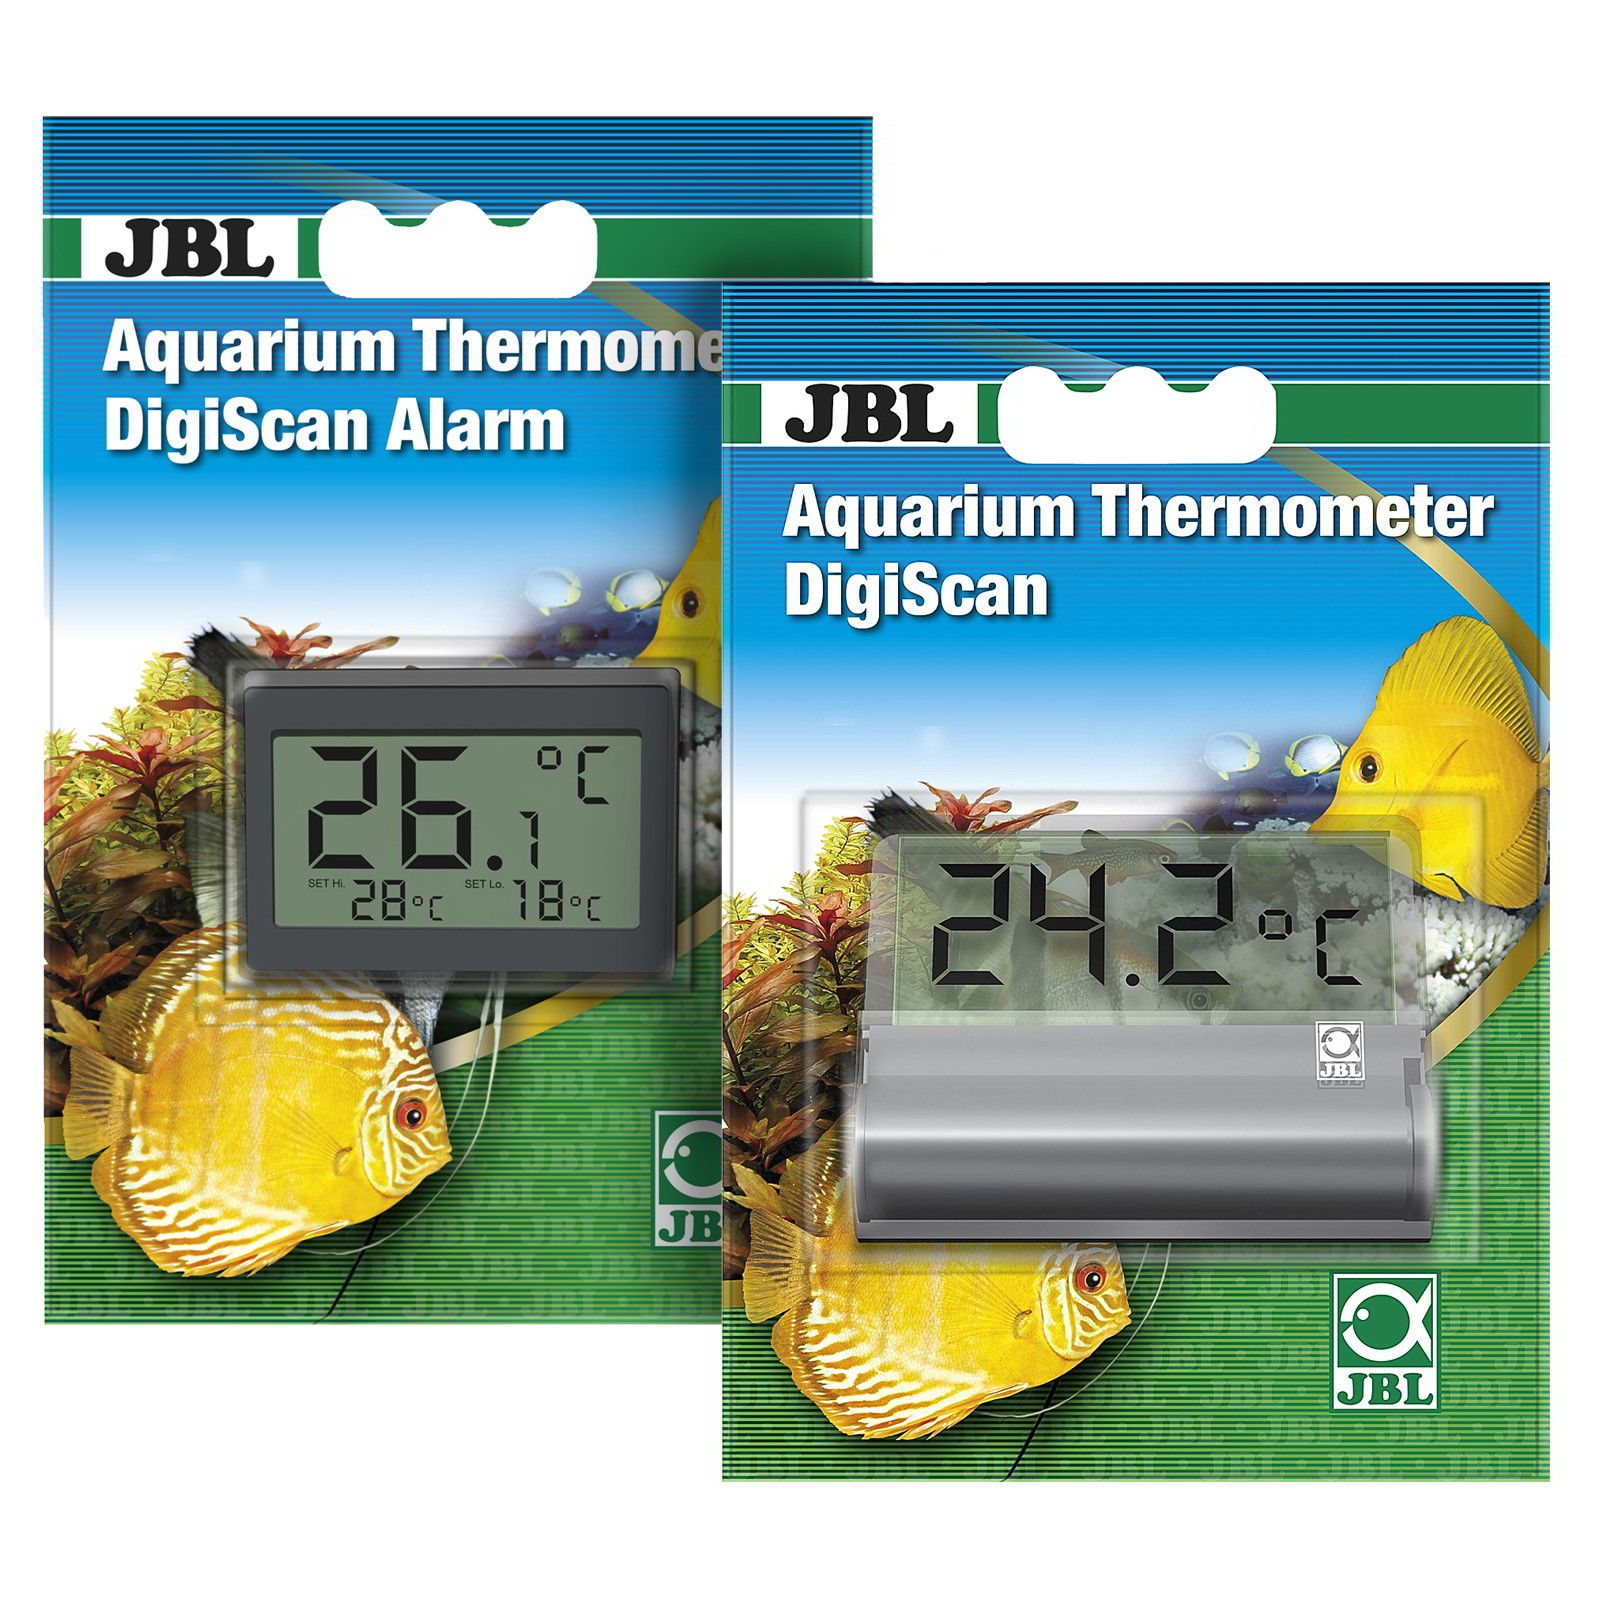 JBL - Aquarium Thermometer - Digiscan